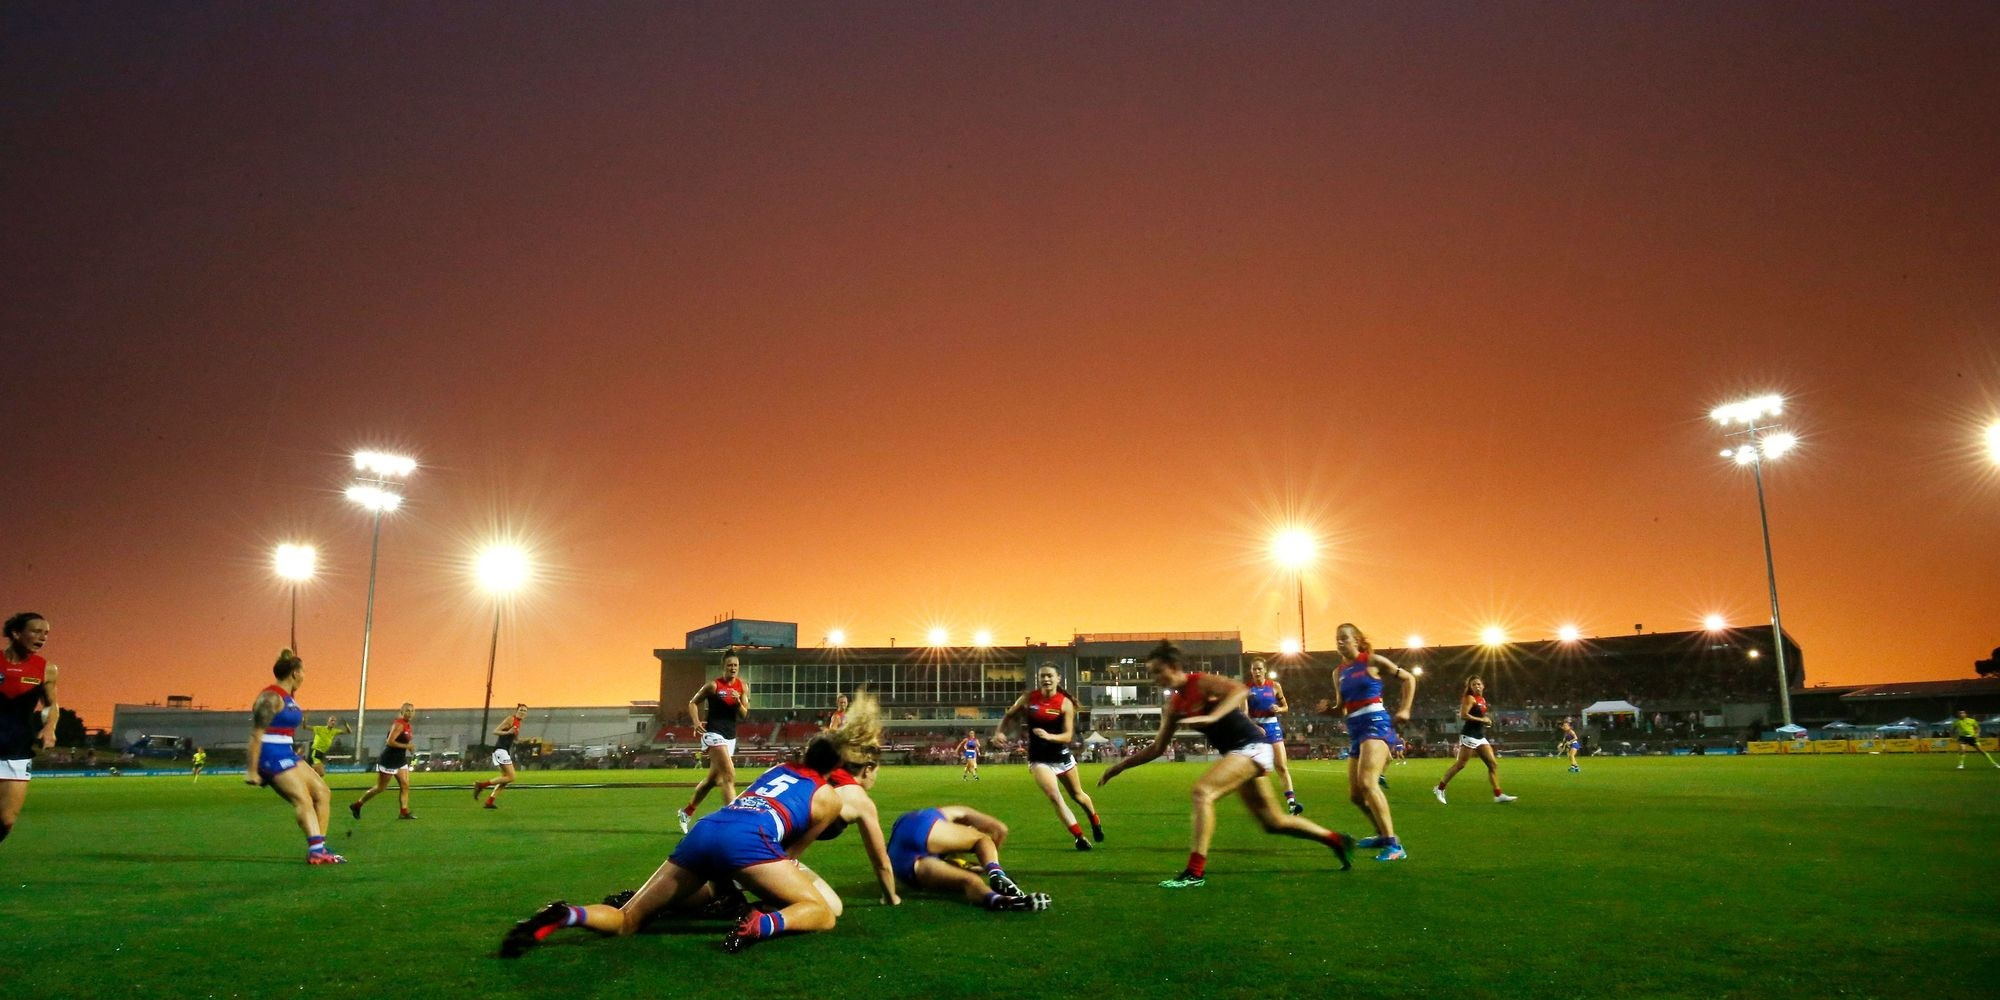 2021 AFL Women's competition guide. Bold predictions. Biggest improvers. Where to watch?